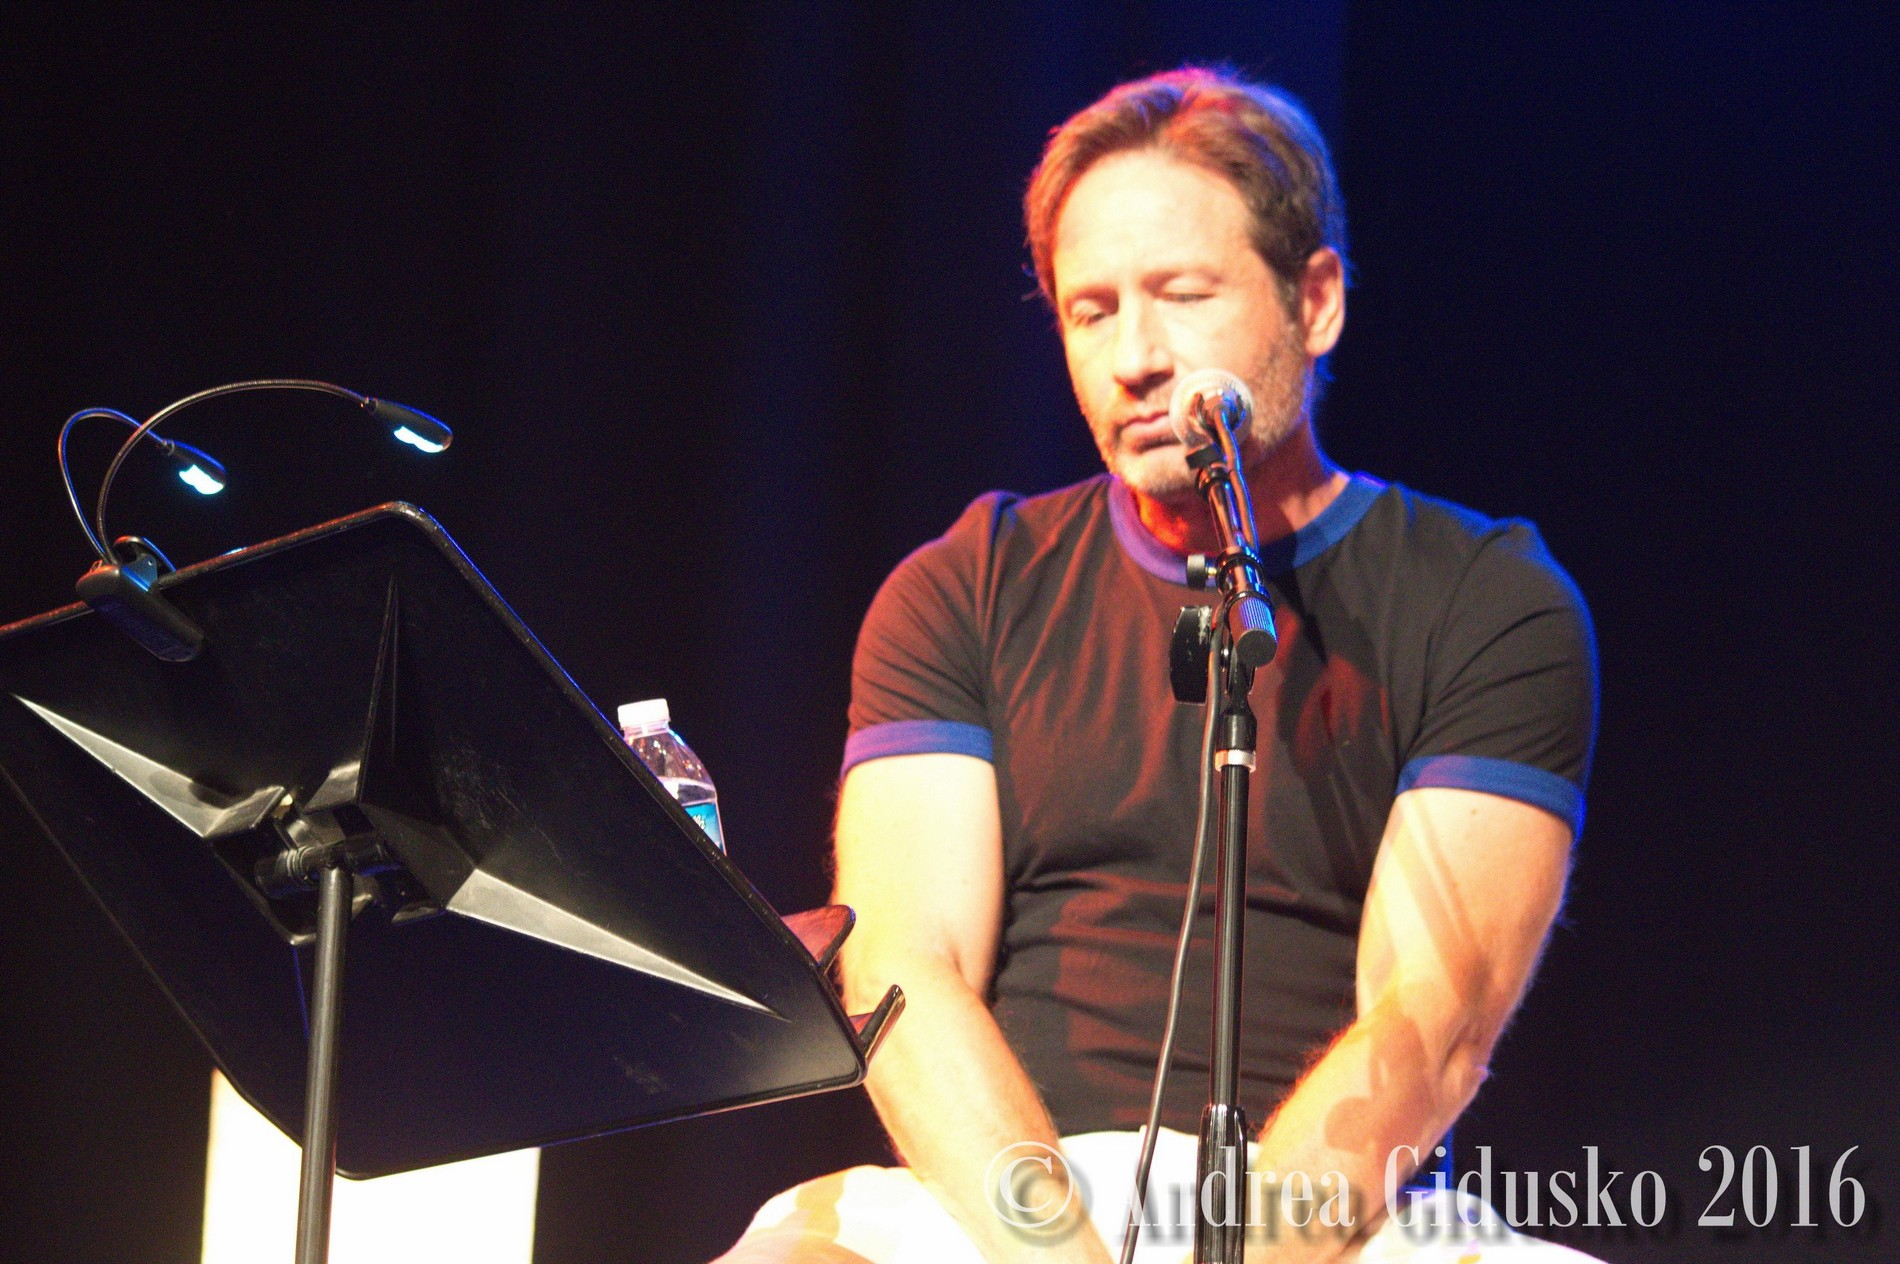 s of David Duchovny Book SigningReading of Bucking Fcking